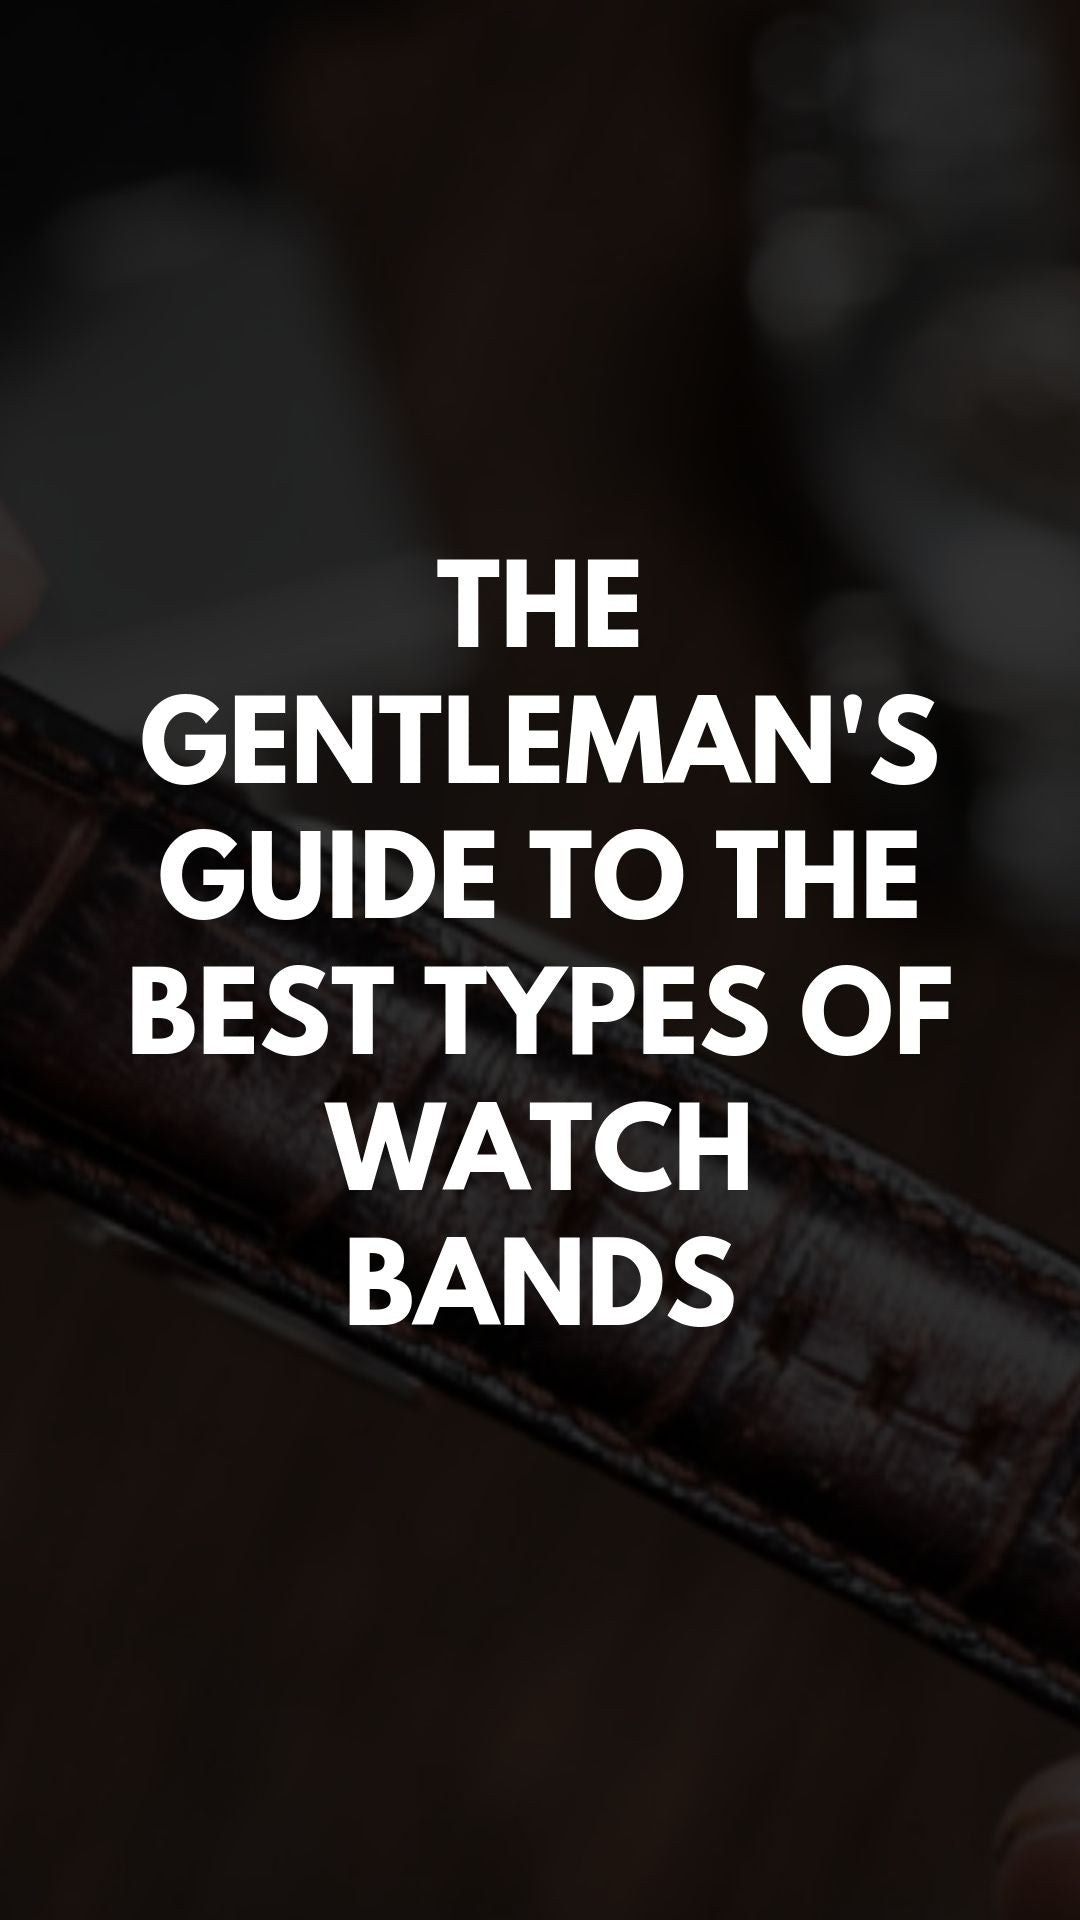 The Gentleman's Guide to the Best Types of Watch Bands